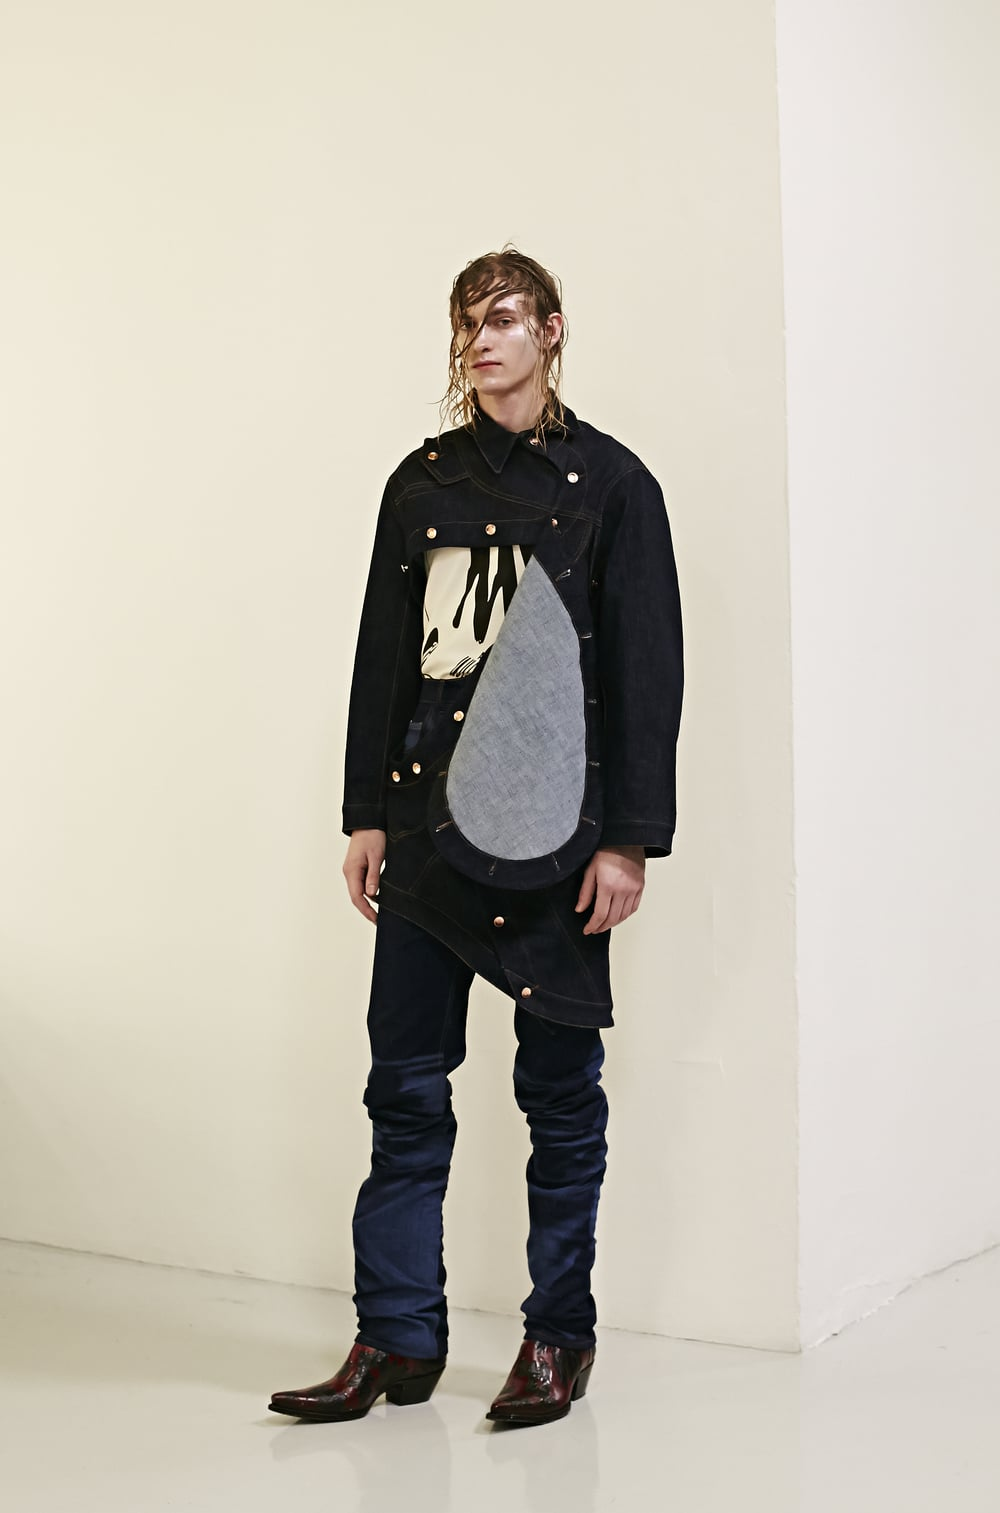 Alex Mullins AW16 at London Collections Men